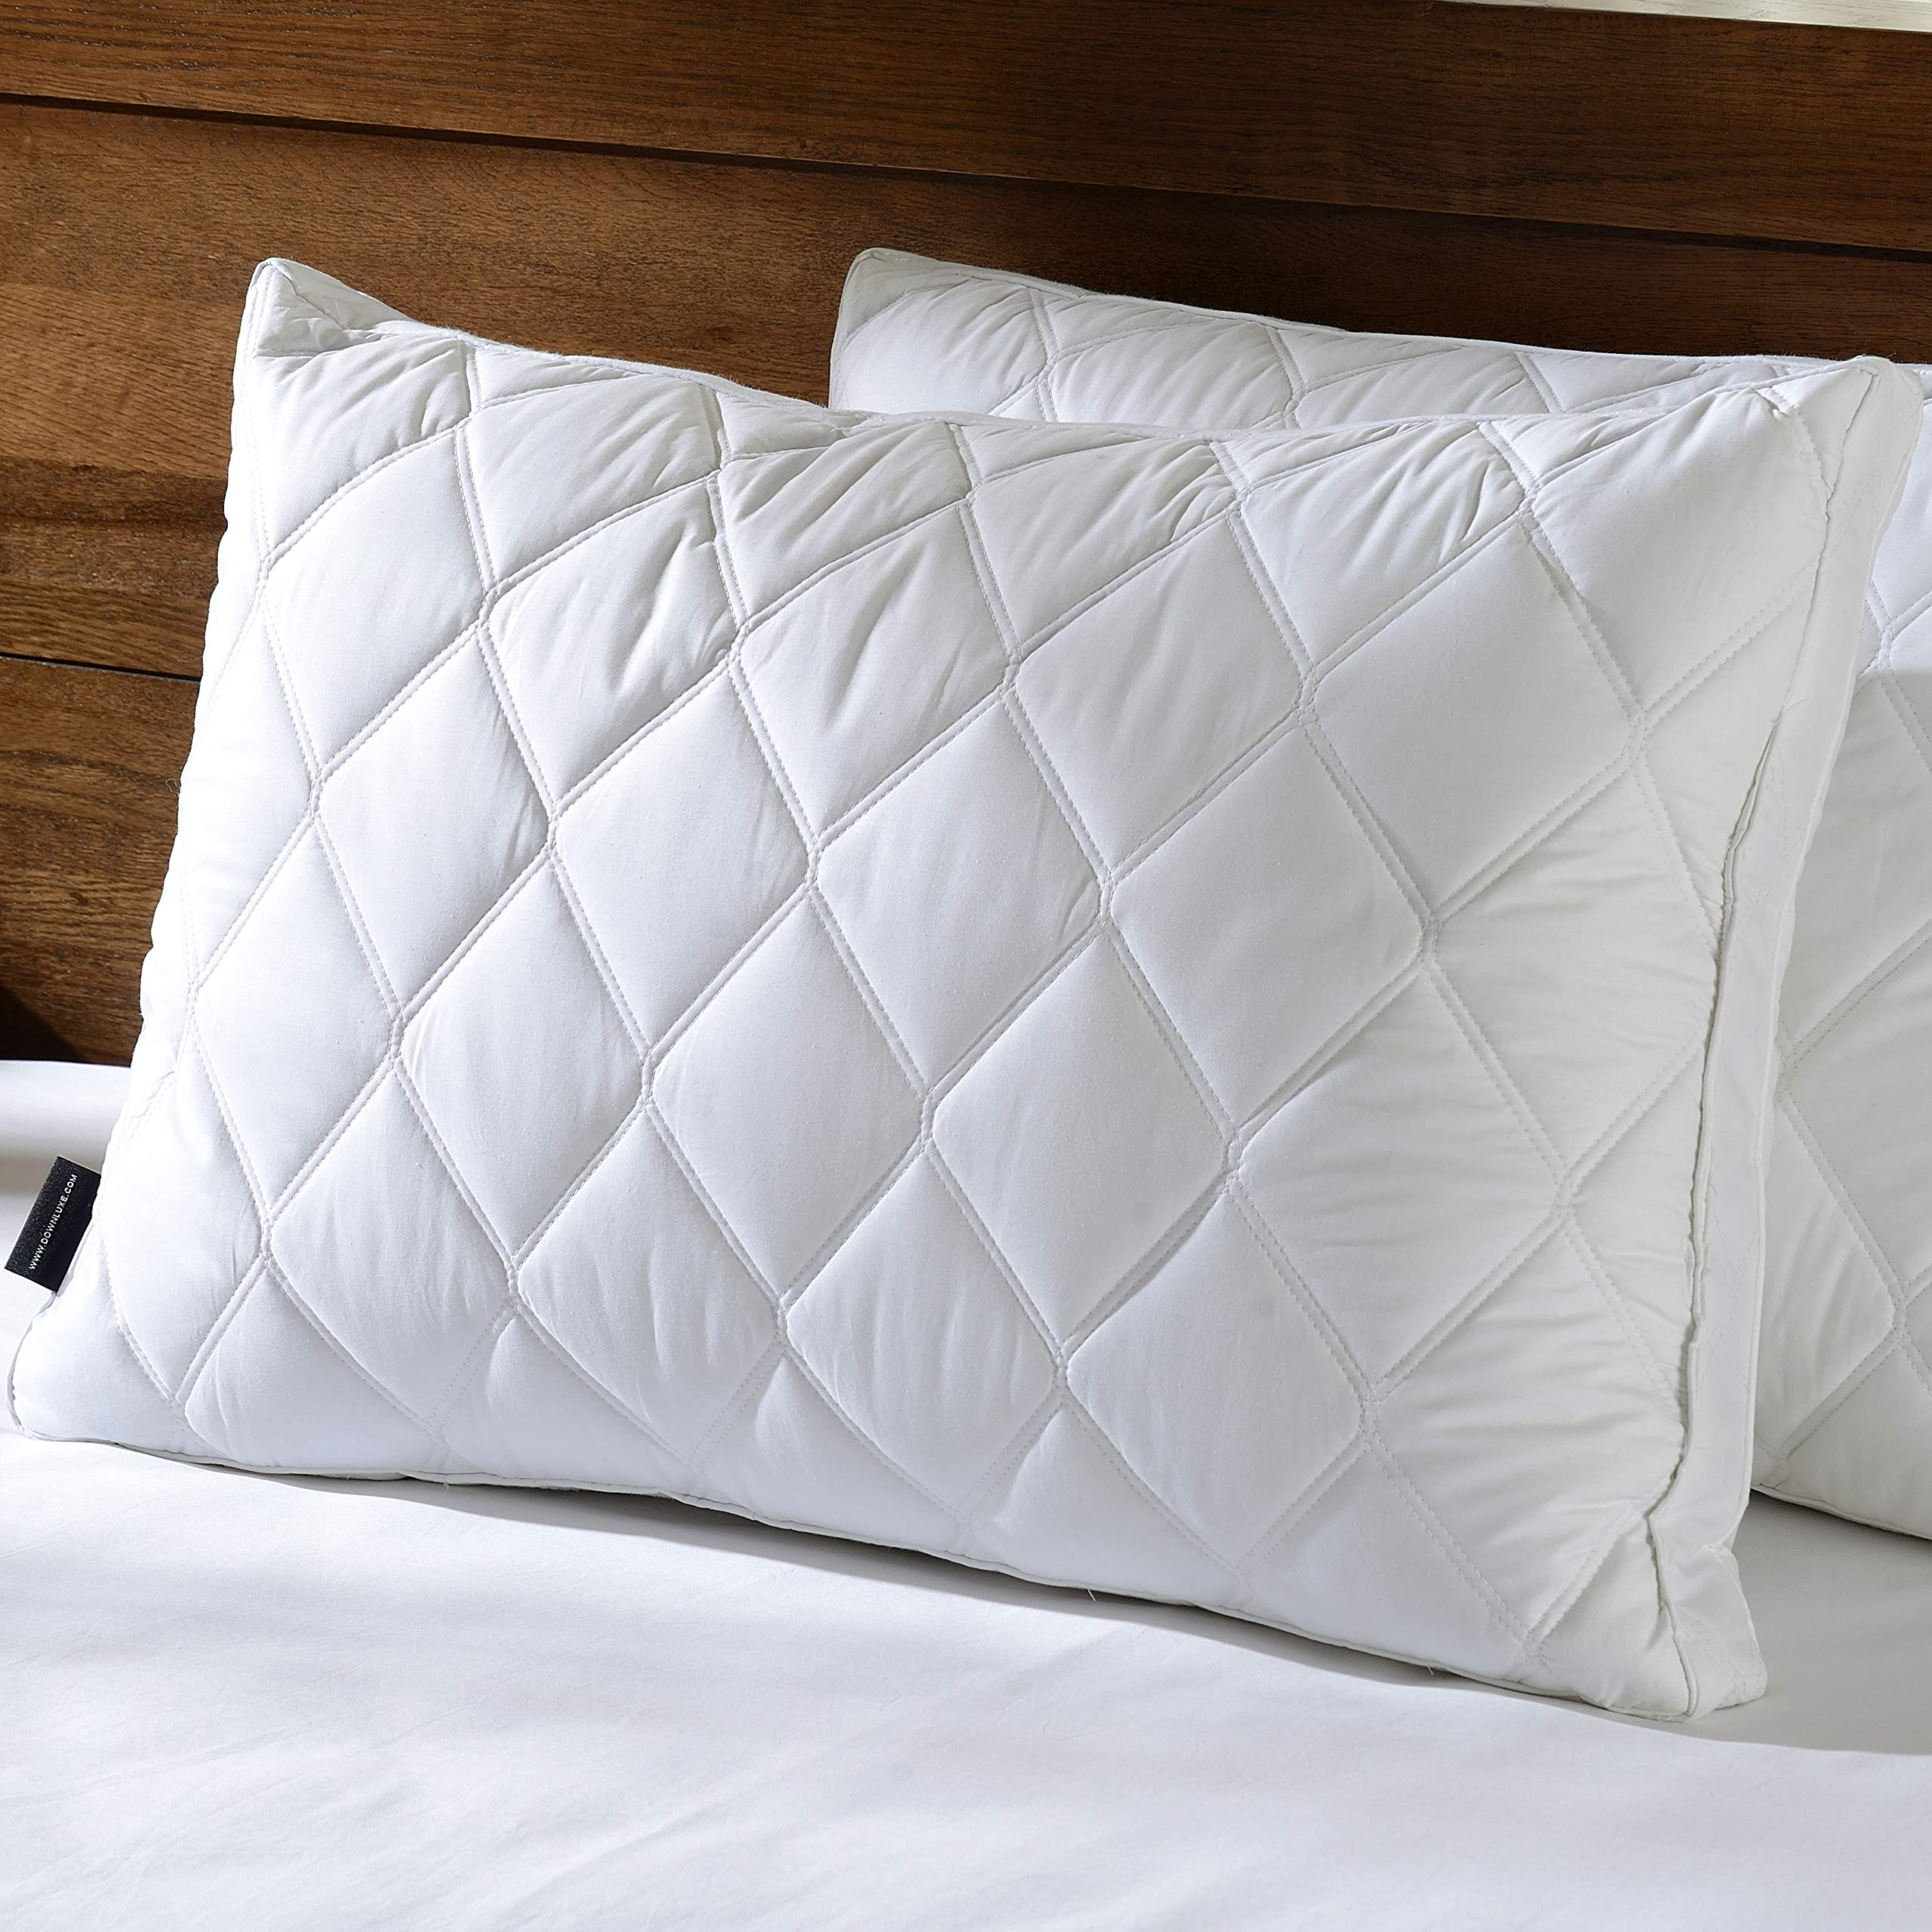 downluxe Set of 2 Quilted Down Feather Gusseted Pillows for Sleeping(Queen) 100% Cotton Downproof Cover Suprior Quality Bed Pillows by downluxe